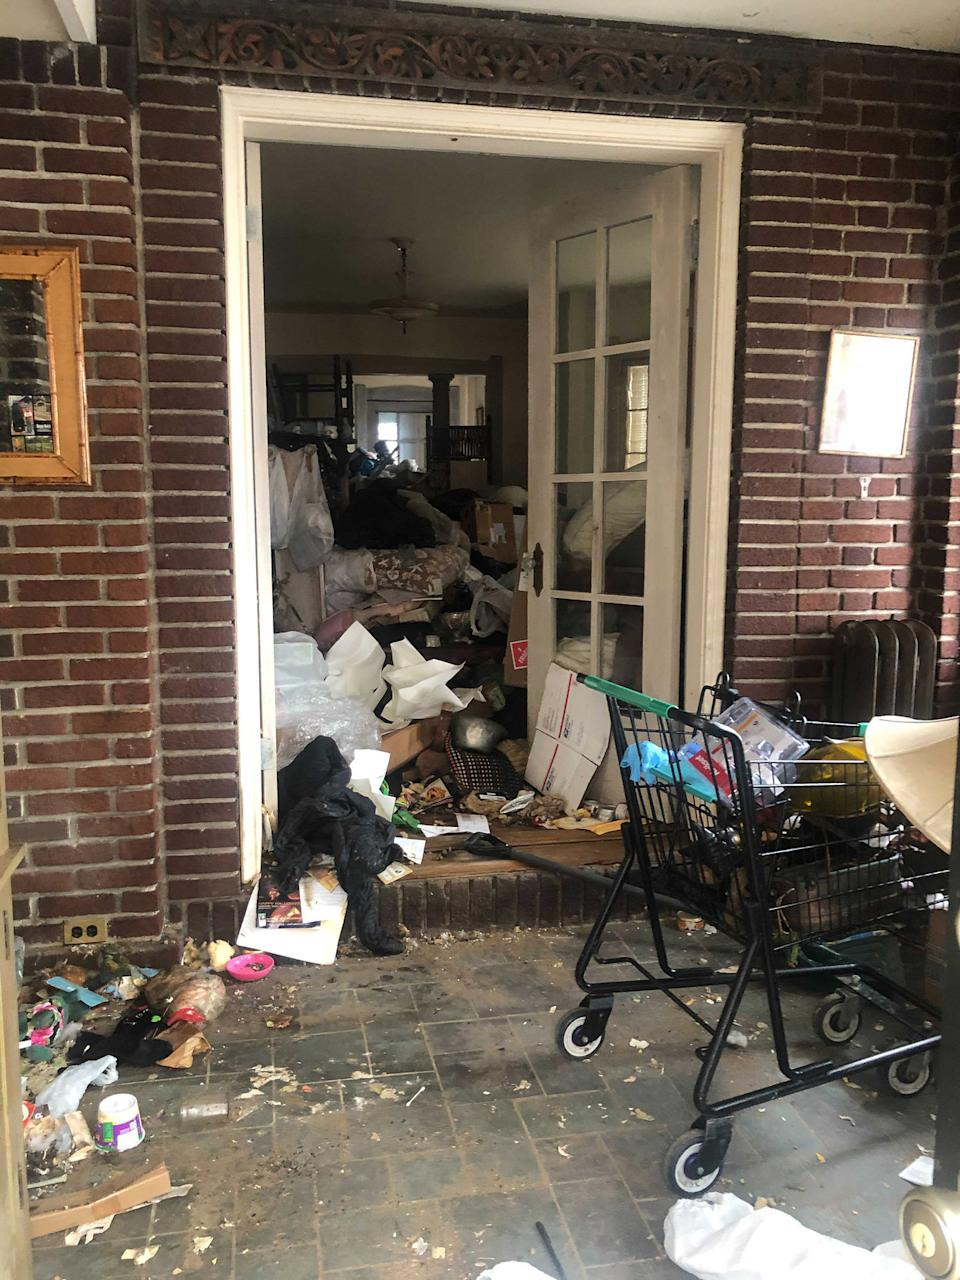 Evelyn Sakash's home filled with rubbish